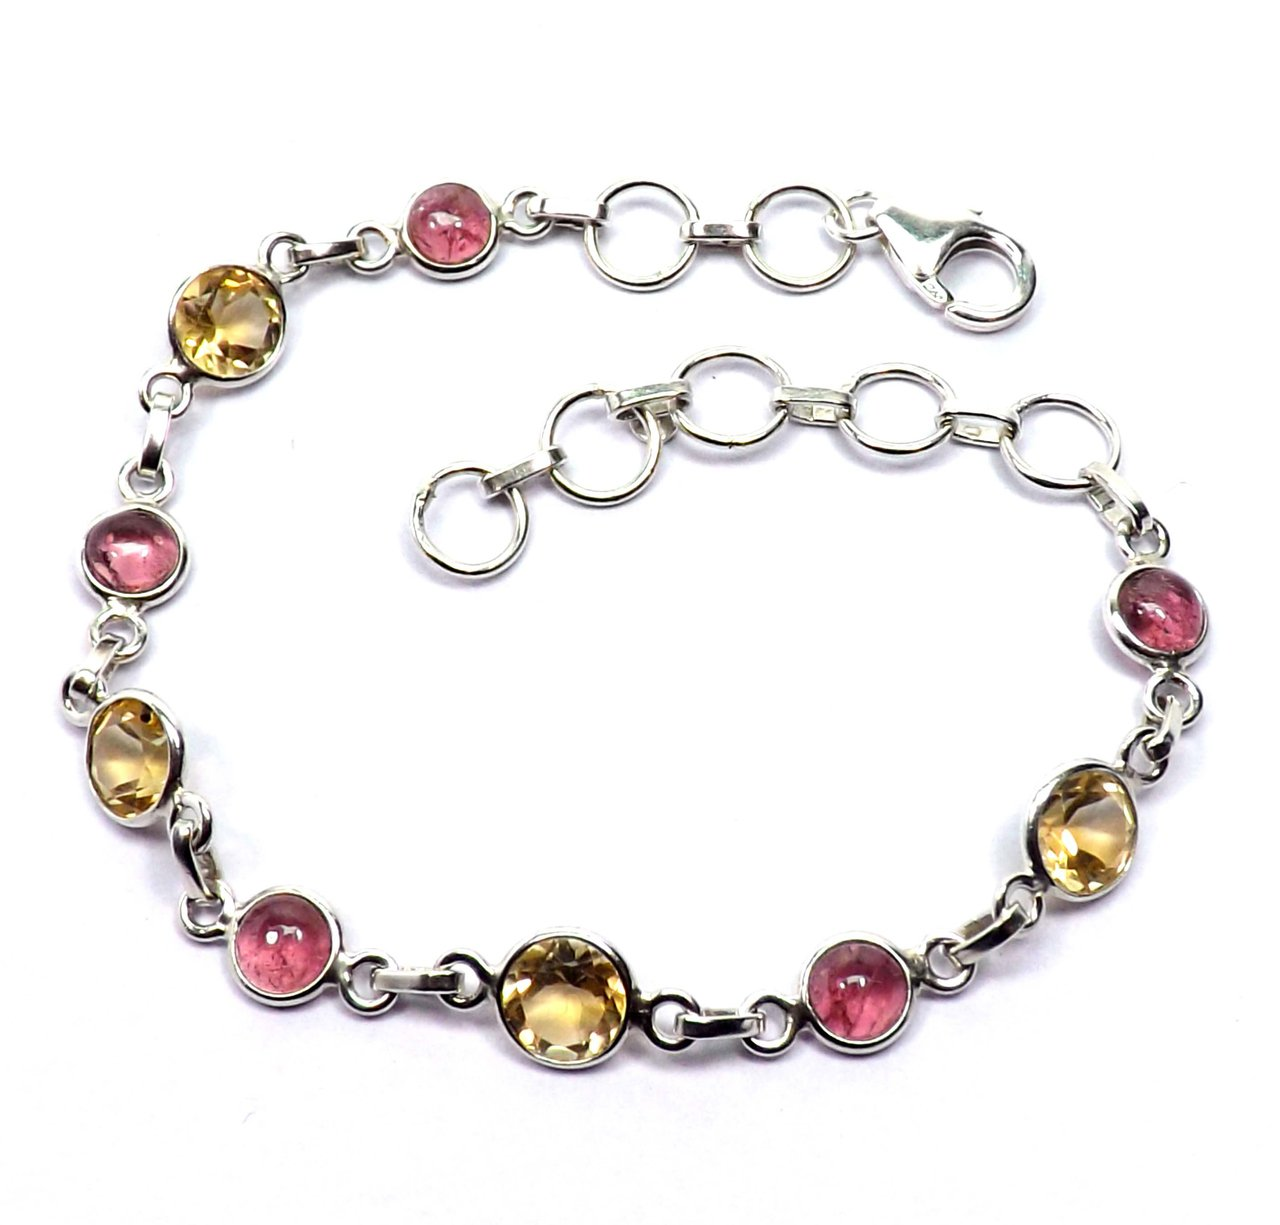 Sitara Collections SC10440 Sterling Silver Bracelet, Tourmaline and Citrine